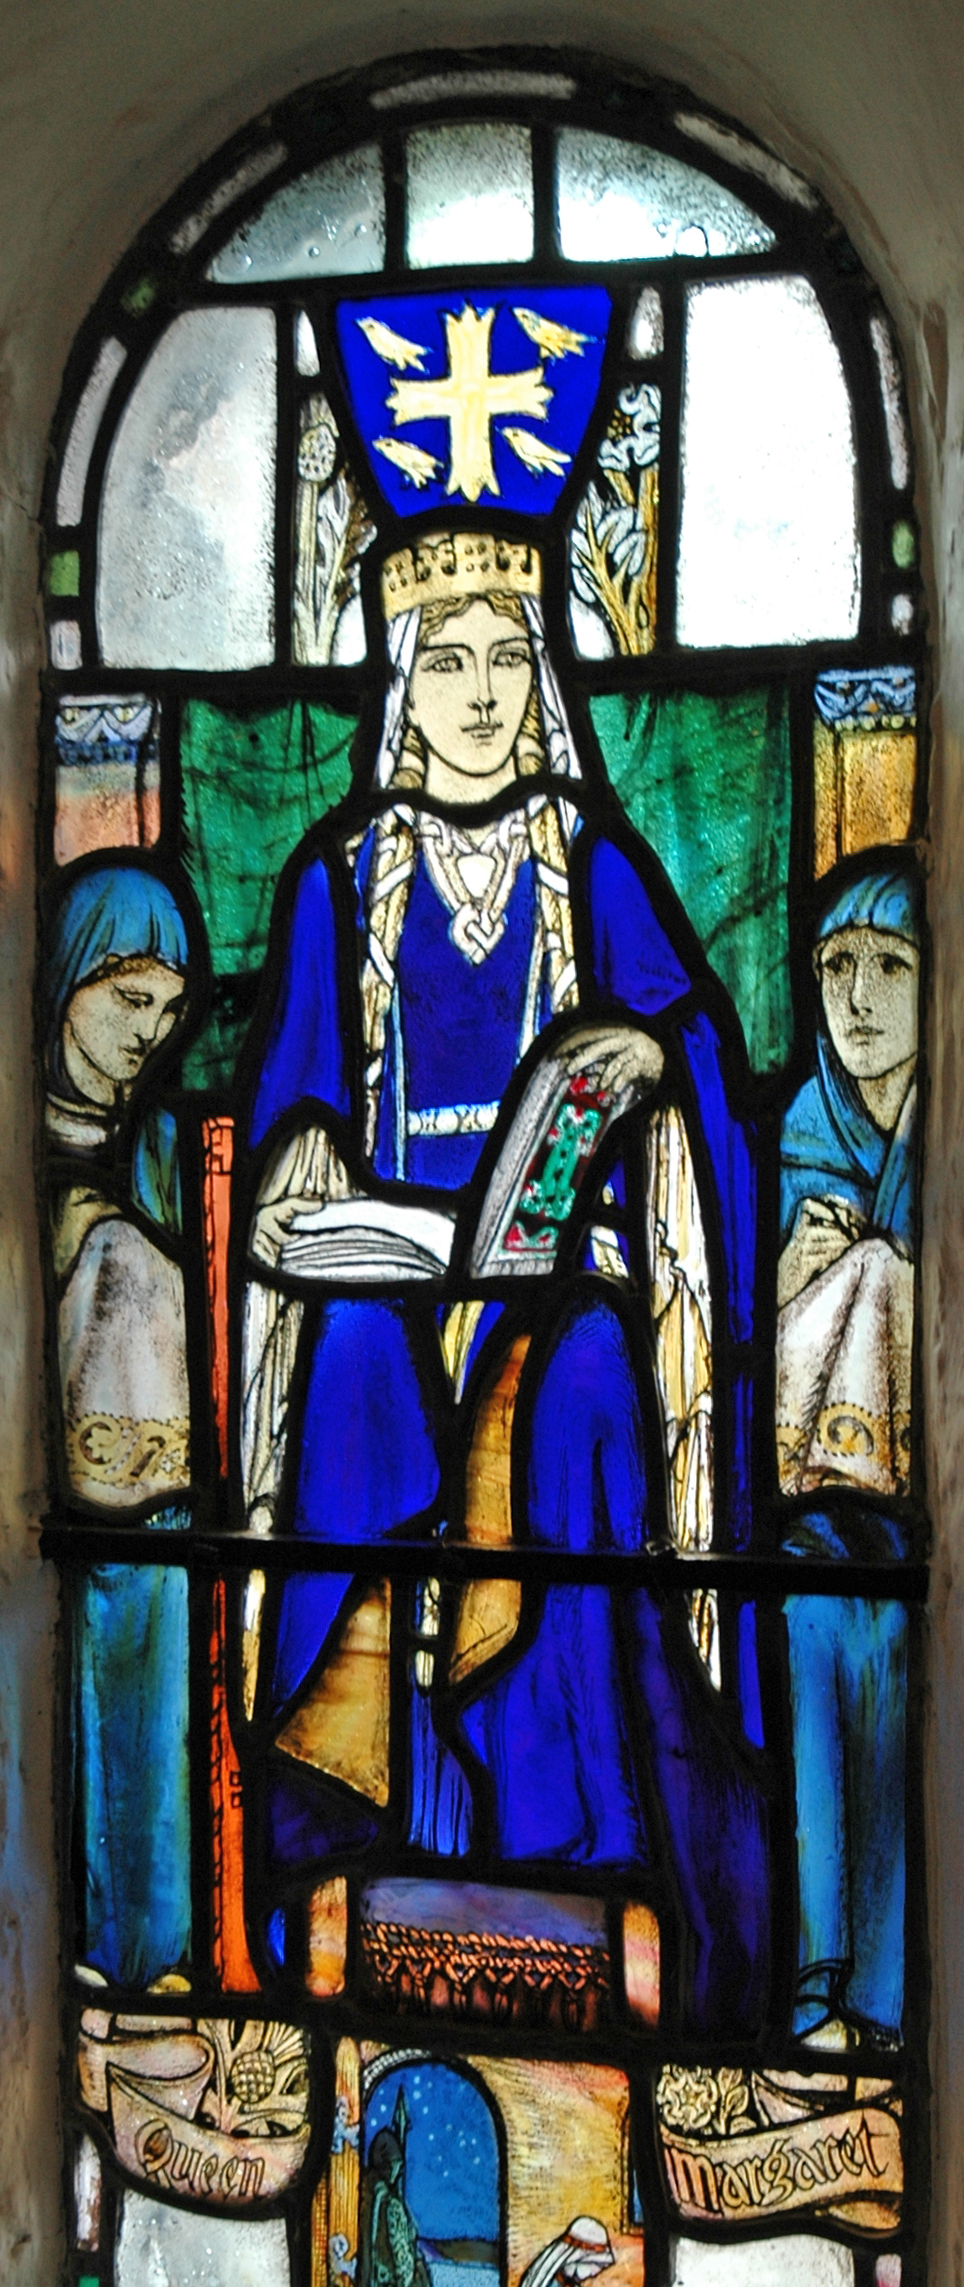 A blue-robed woman wearing a crown